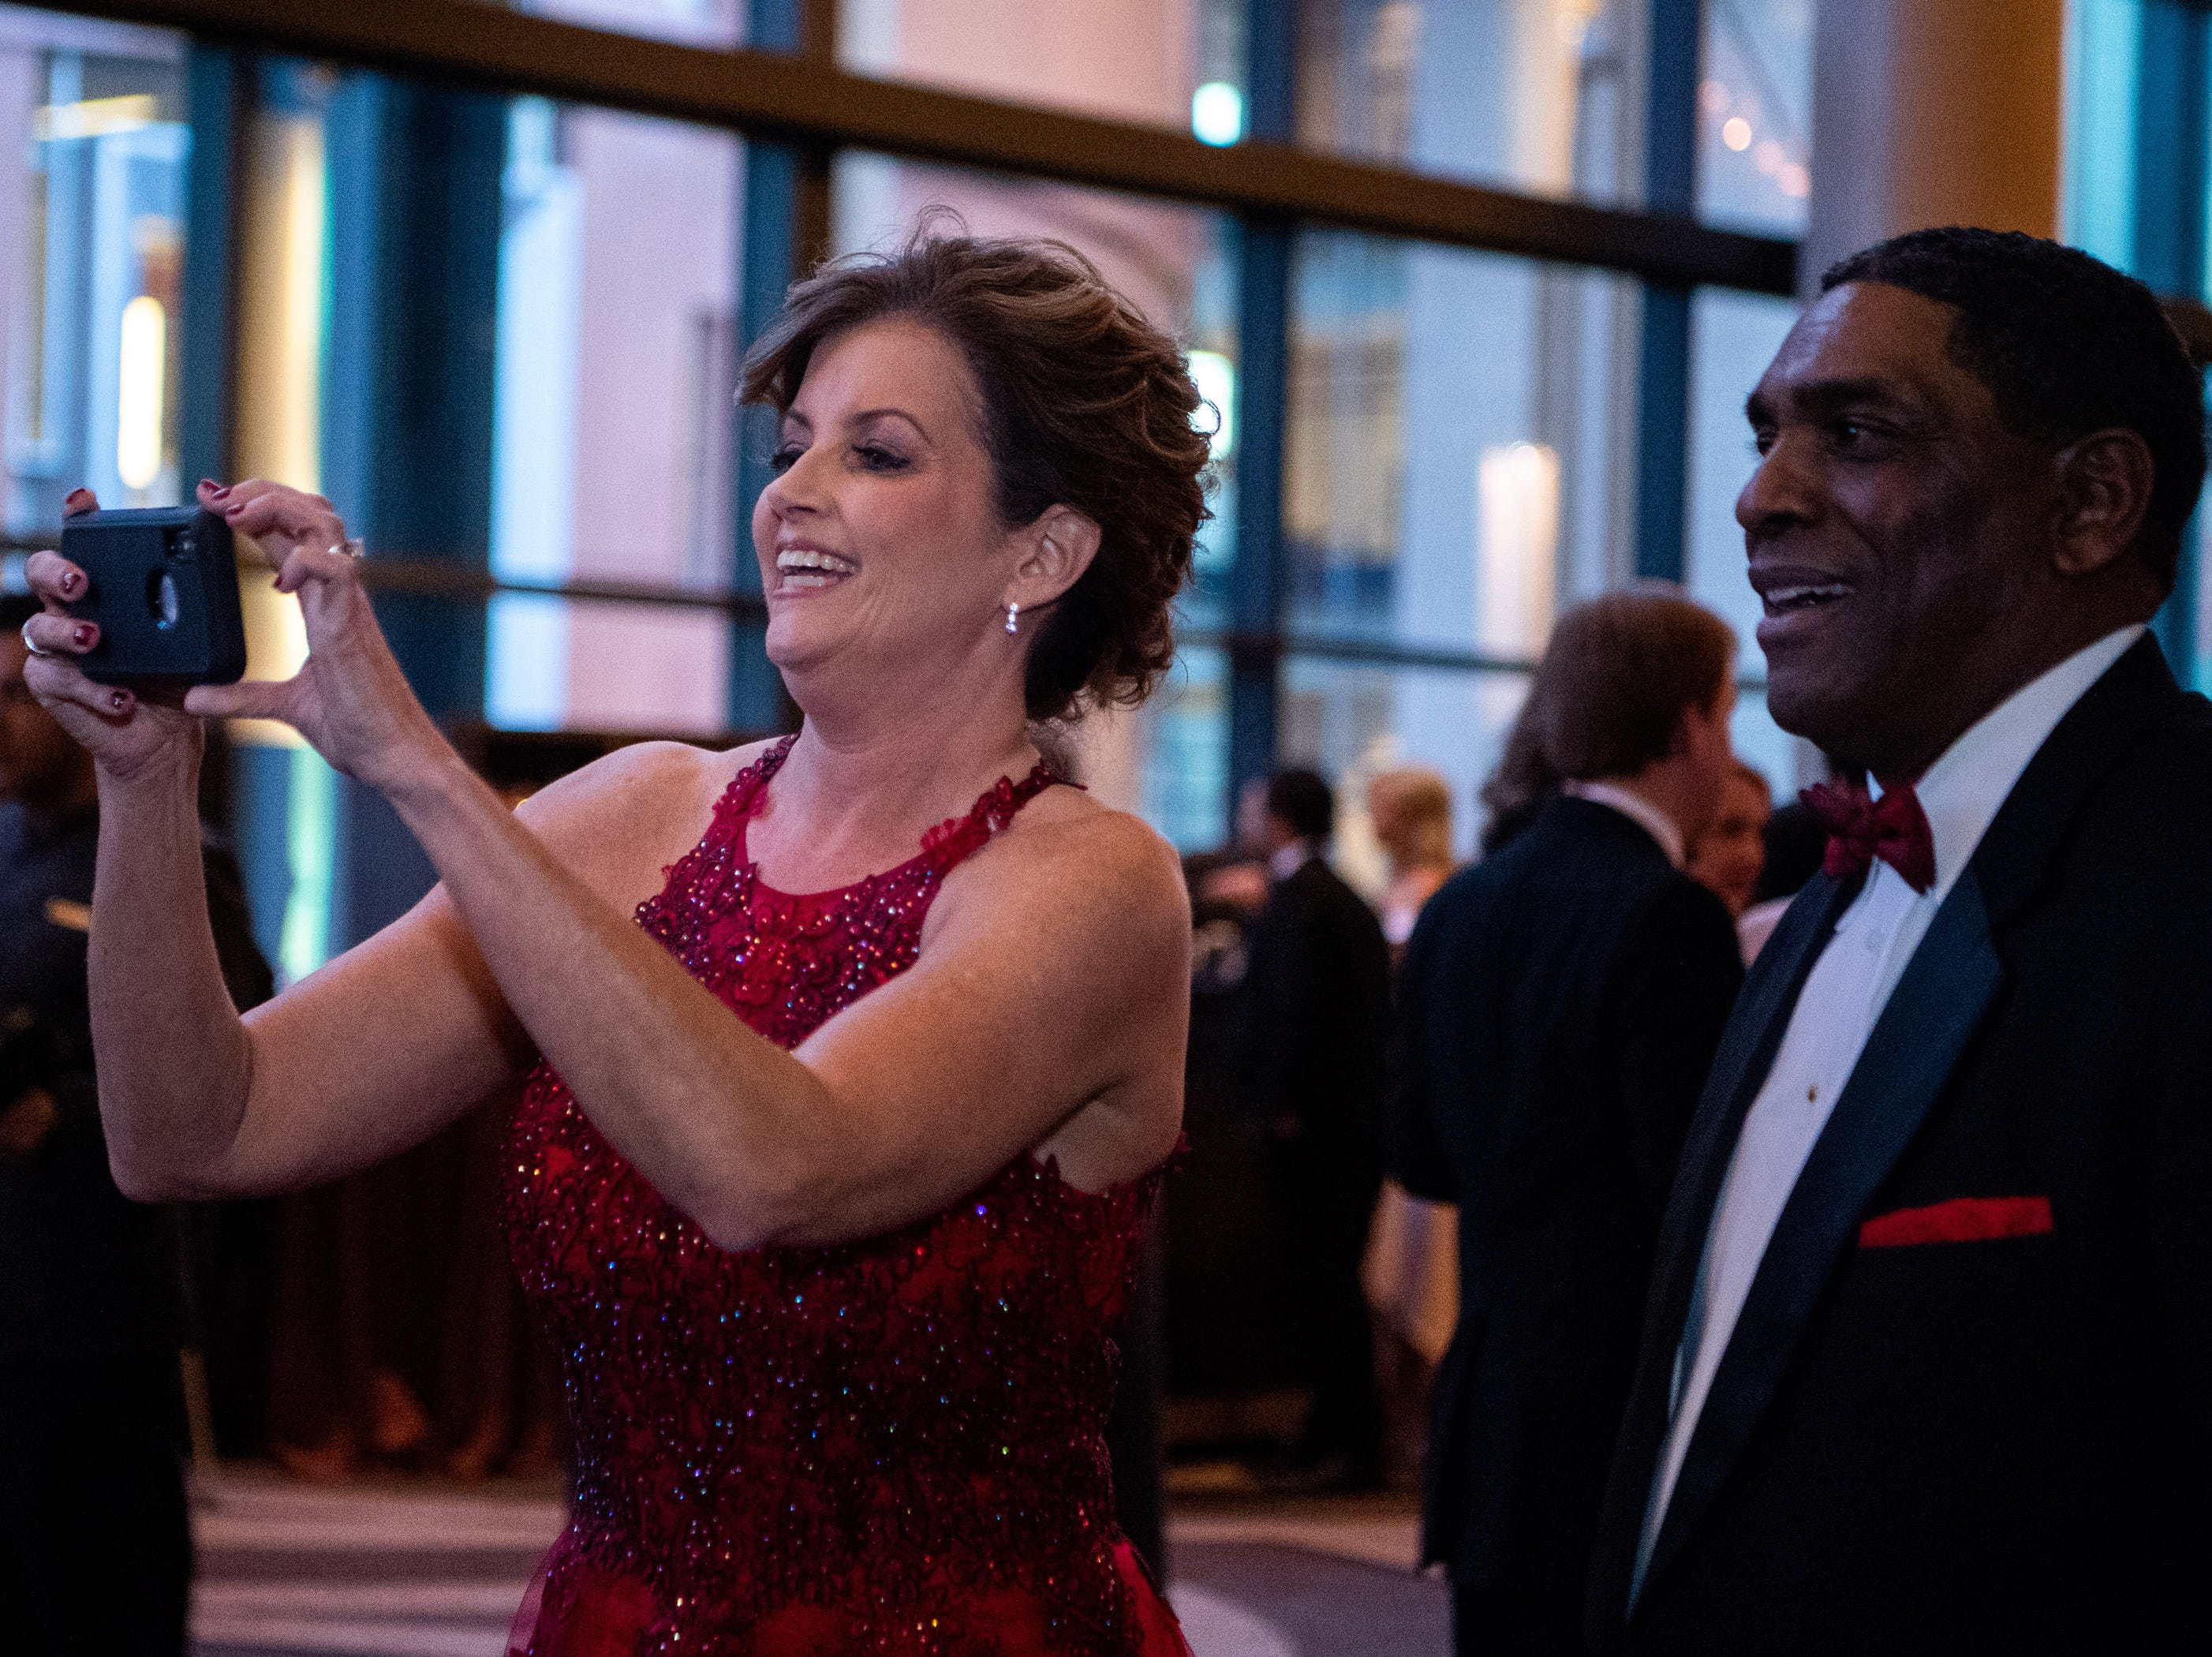 A woman takes a photo during Austin Peay State University's annual Candlelight Ball at the Omni Nashville Hotel Saturday, March 16, 2019, in Nashville, Tenn.